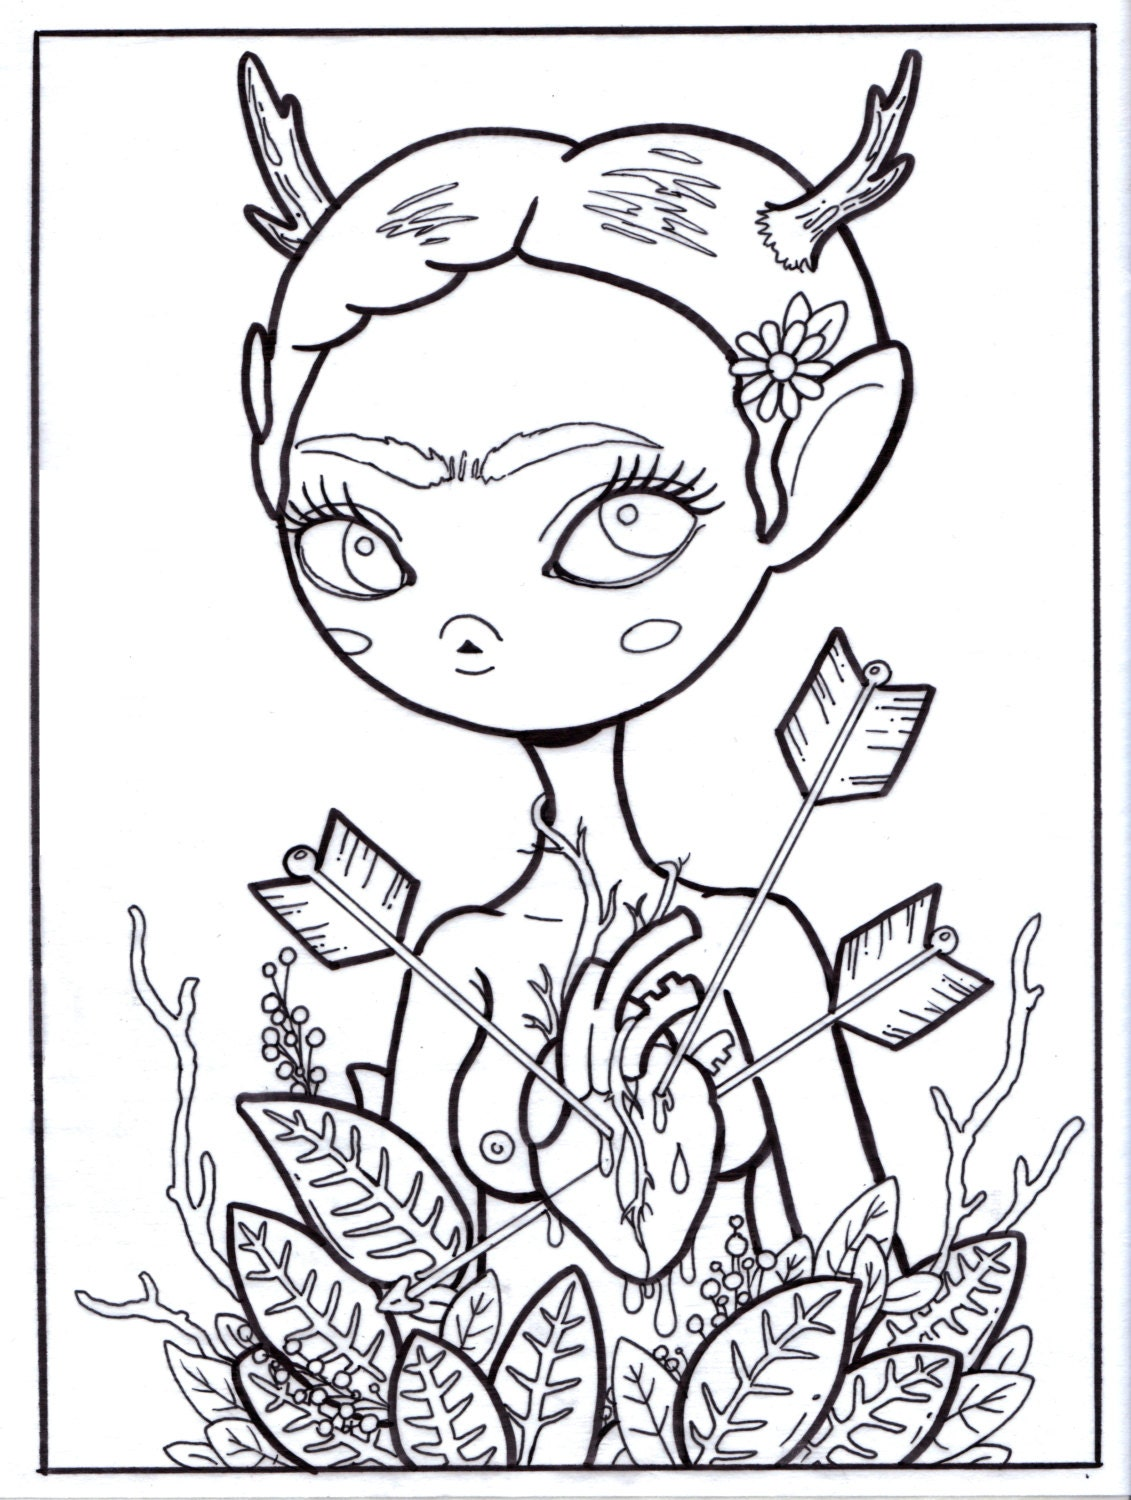 frida kahlo printable coloring pages - frida kahlo adult lowbrow art coloring page jpg and by